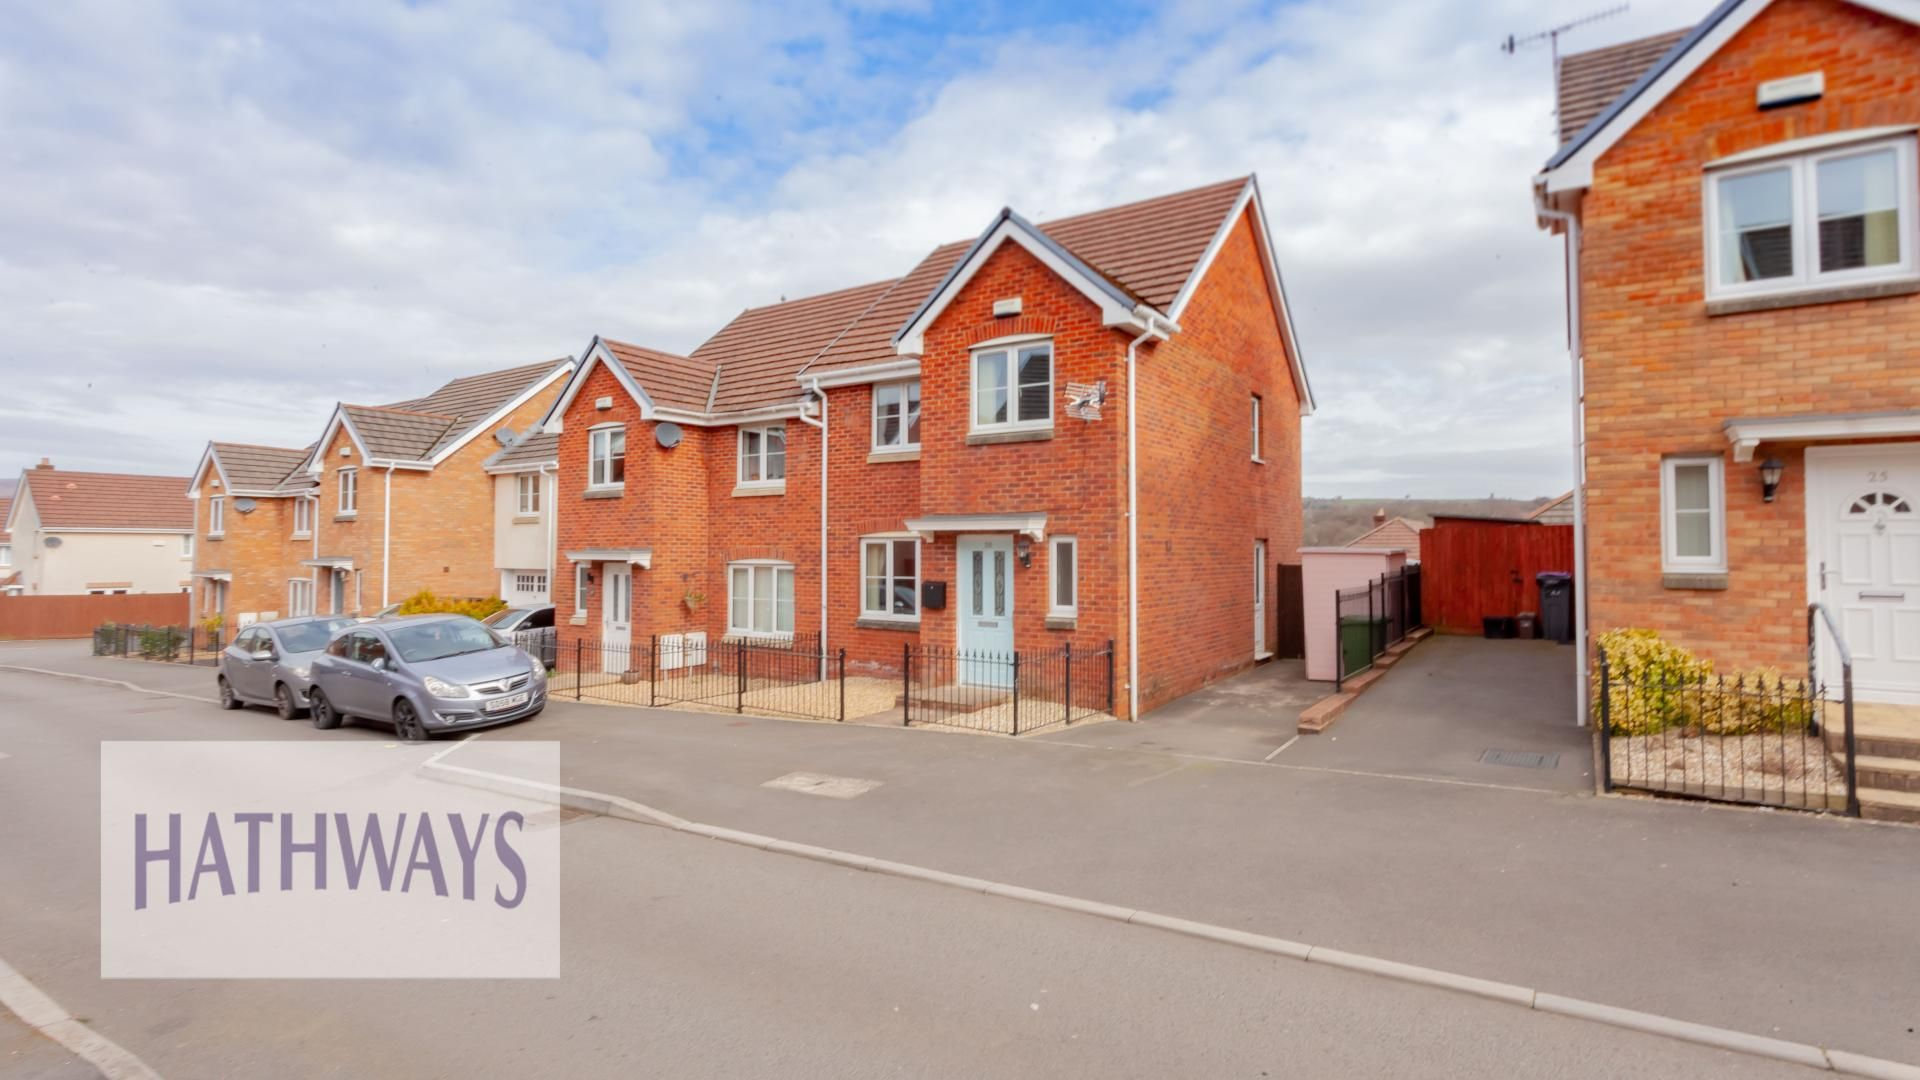 3 bed house for sale in Hanbury Grove, NP4